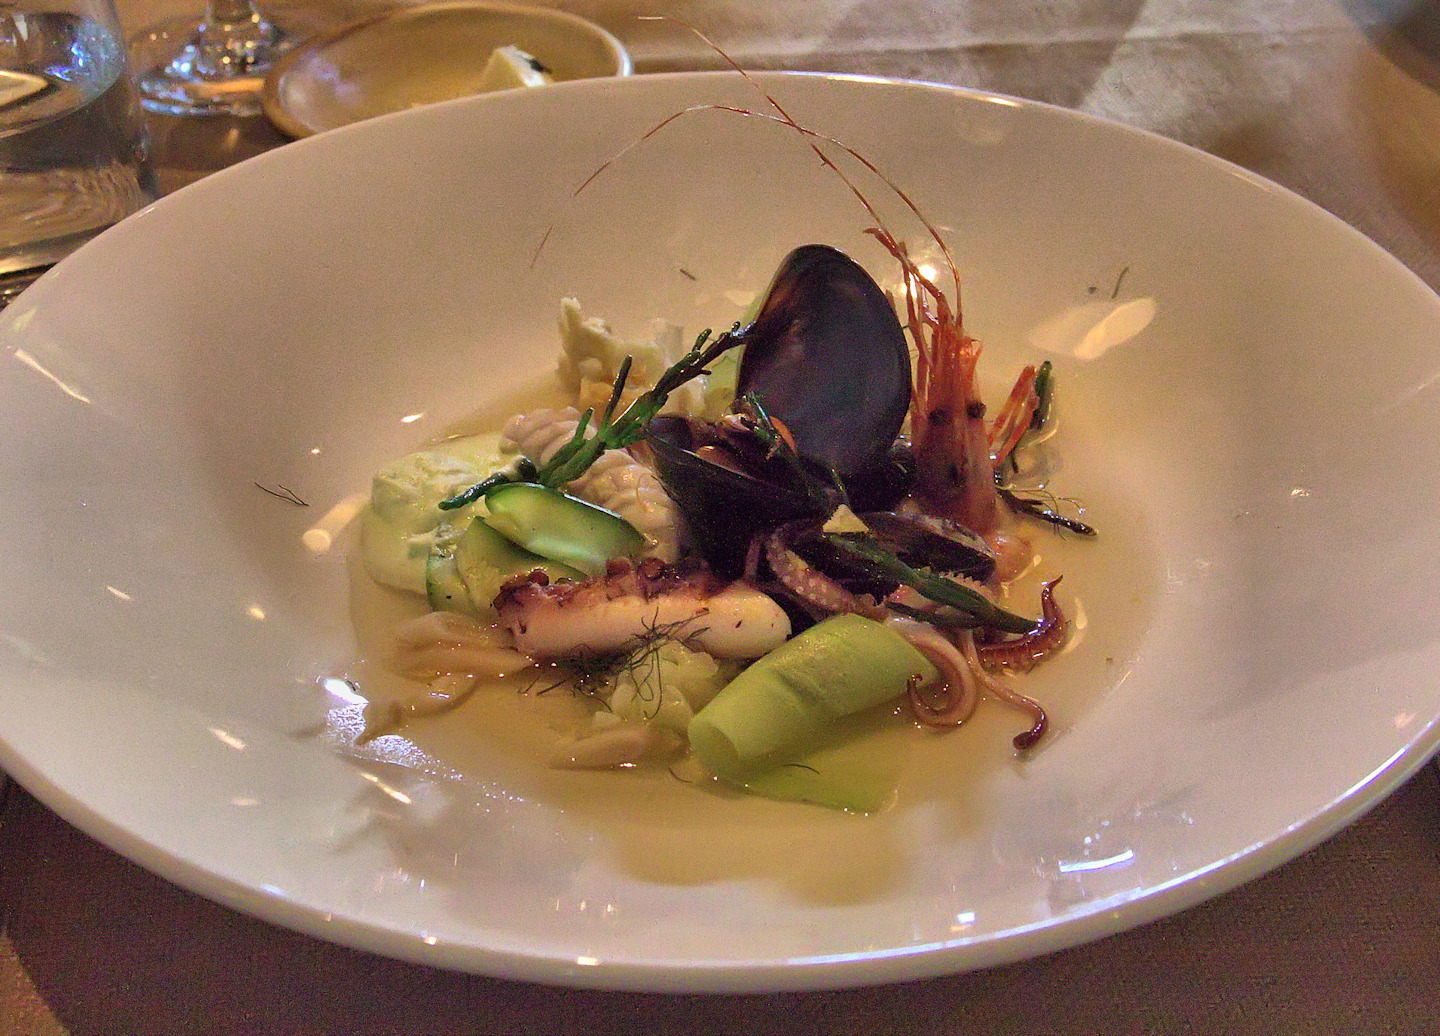 Southwest Florida Forks: Dinner at the Conservatory at Greystone